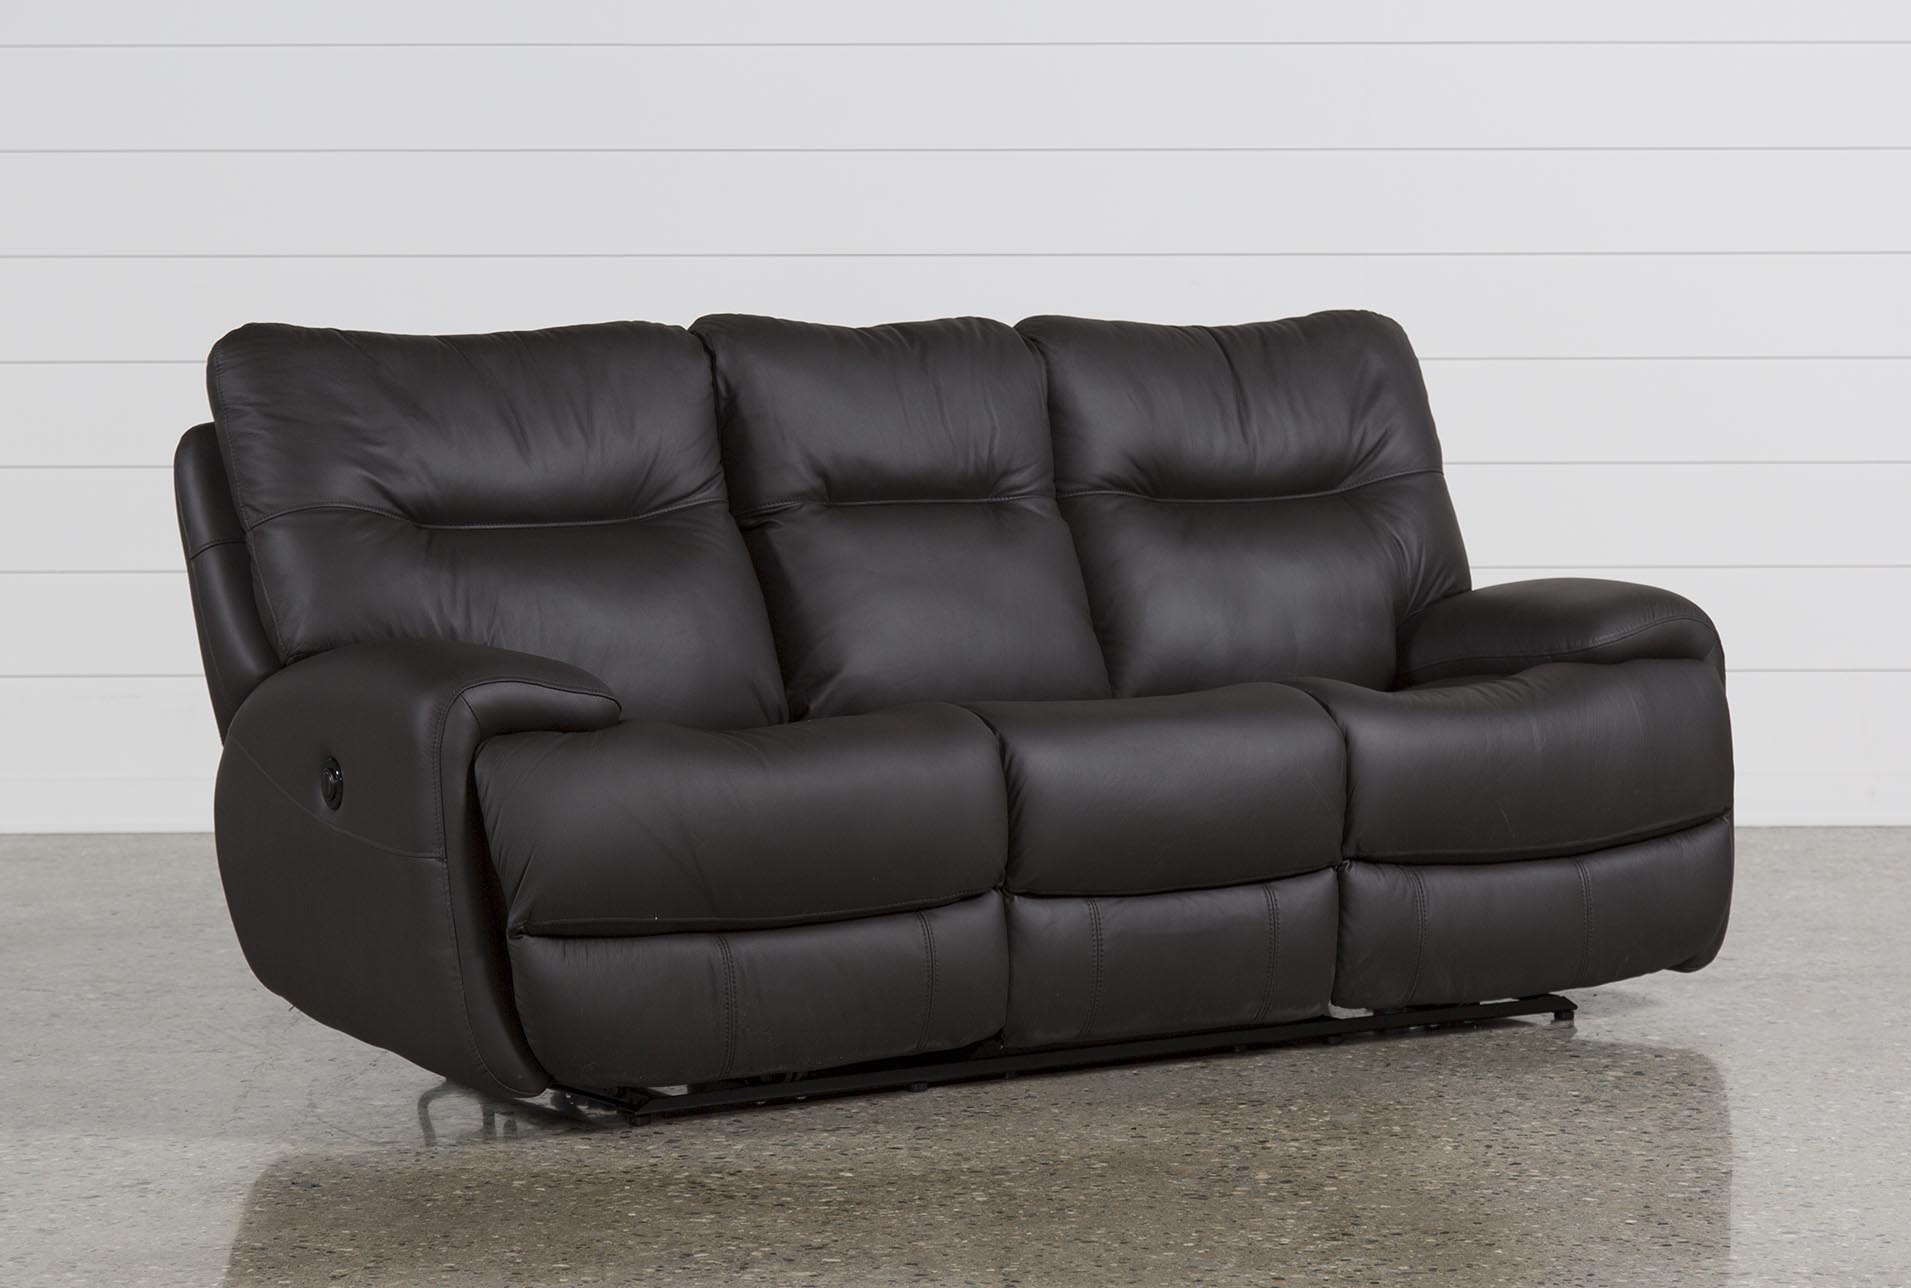 Oliver Graphite Leather Power Reclining Sofa (Qty: 1) Has Been Successfully  Added To Your Cart.